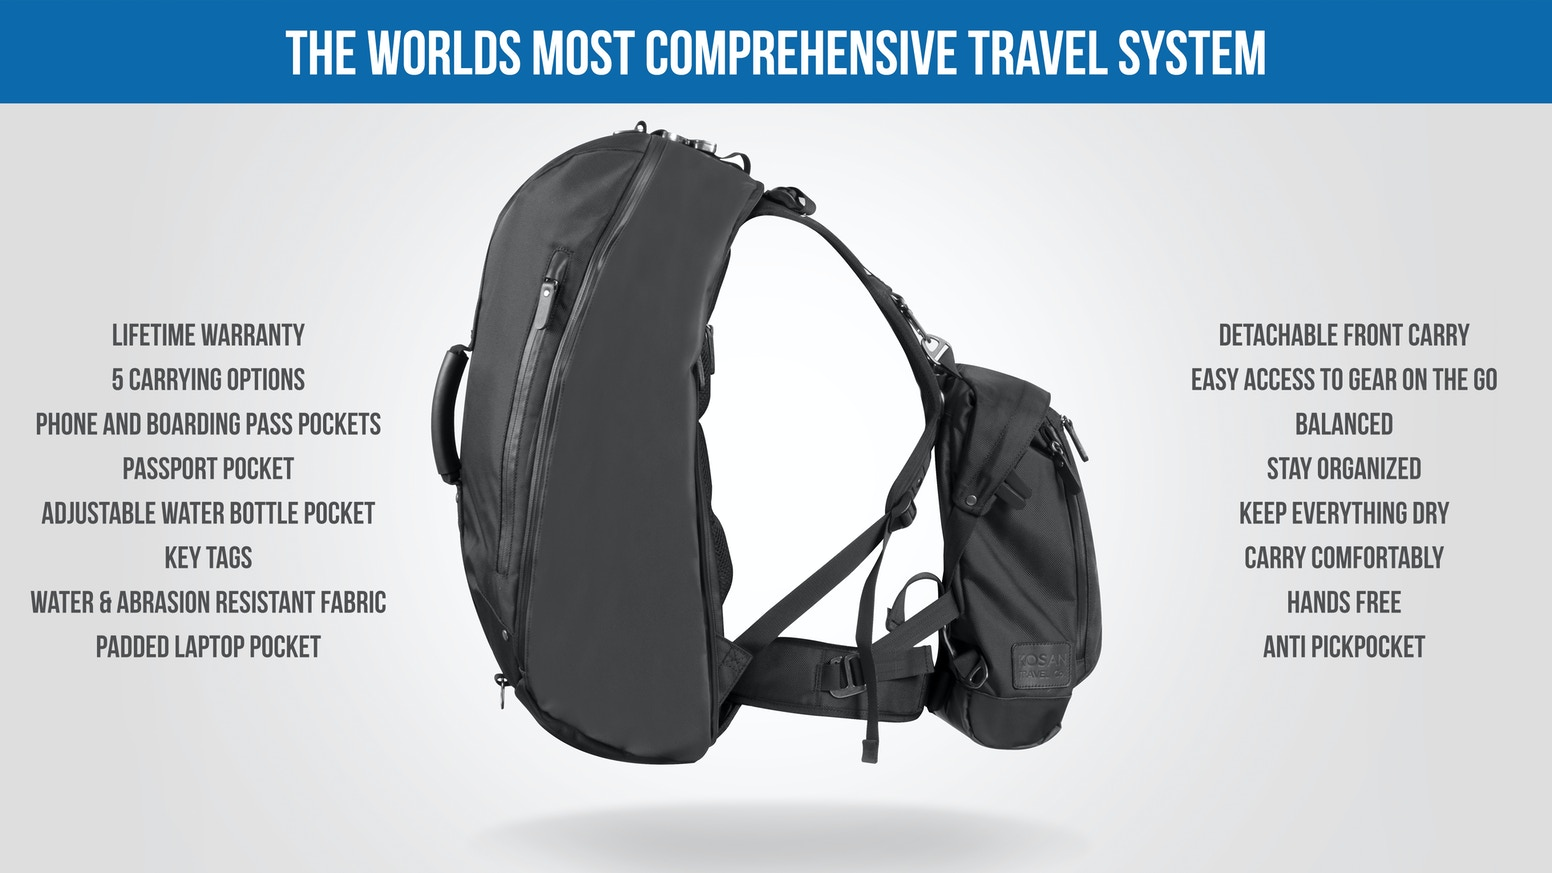 The world's most comprehensive travel system, making travelling easier, safer & more comfortable than ever.